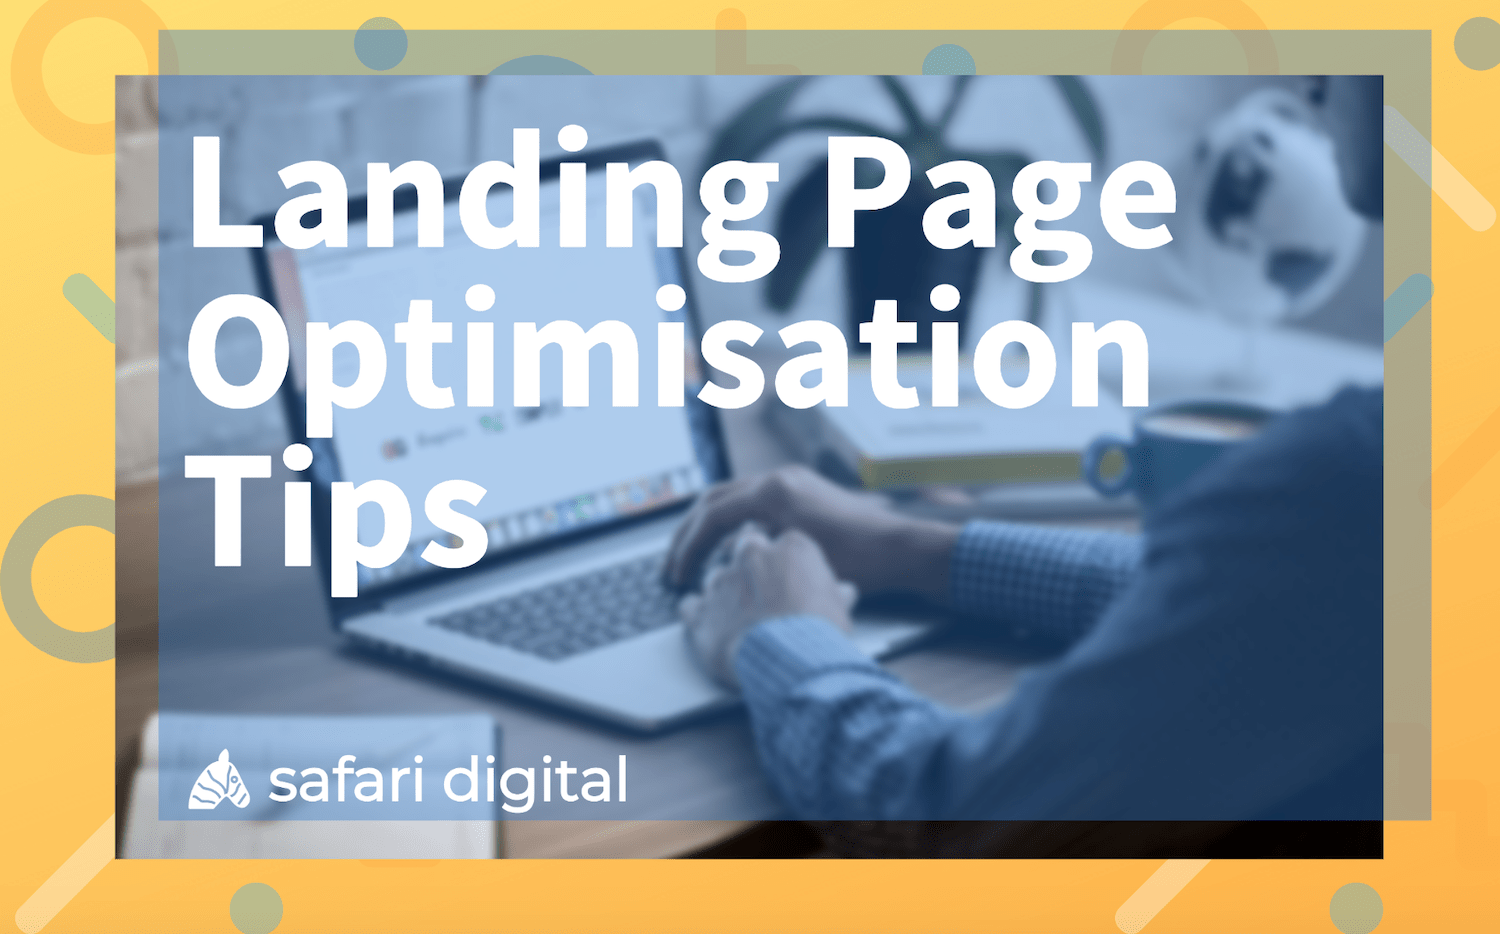 Landing page optimisation tips banner image Large